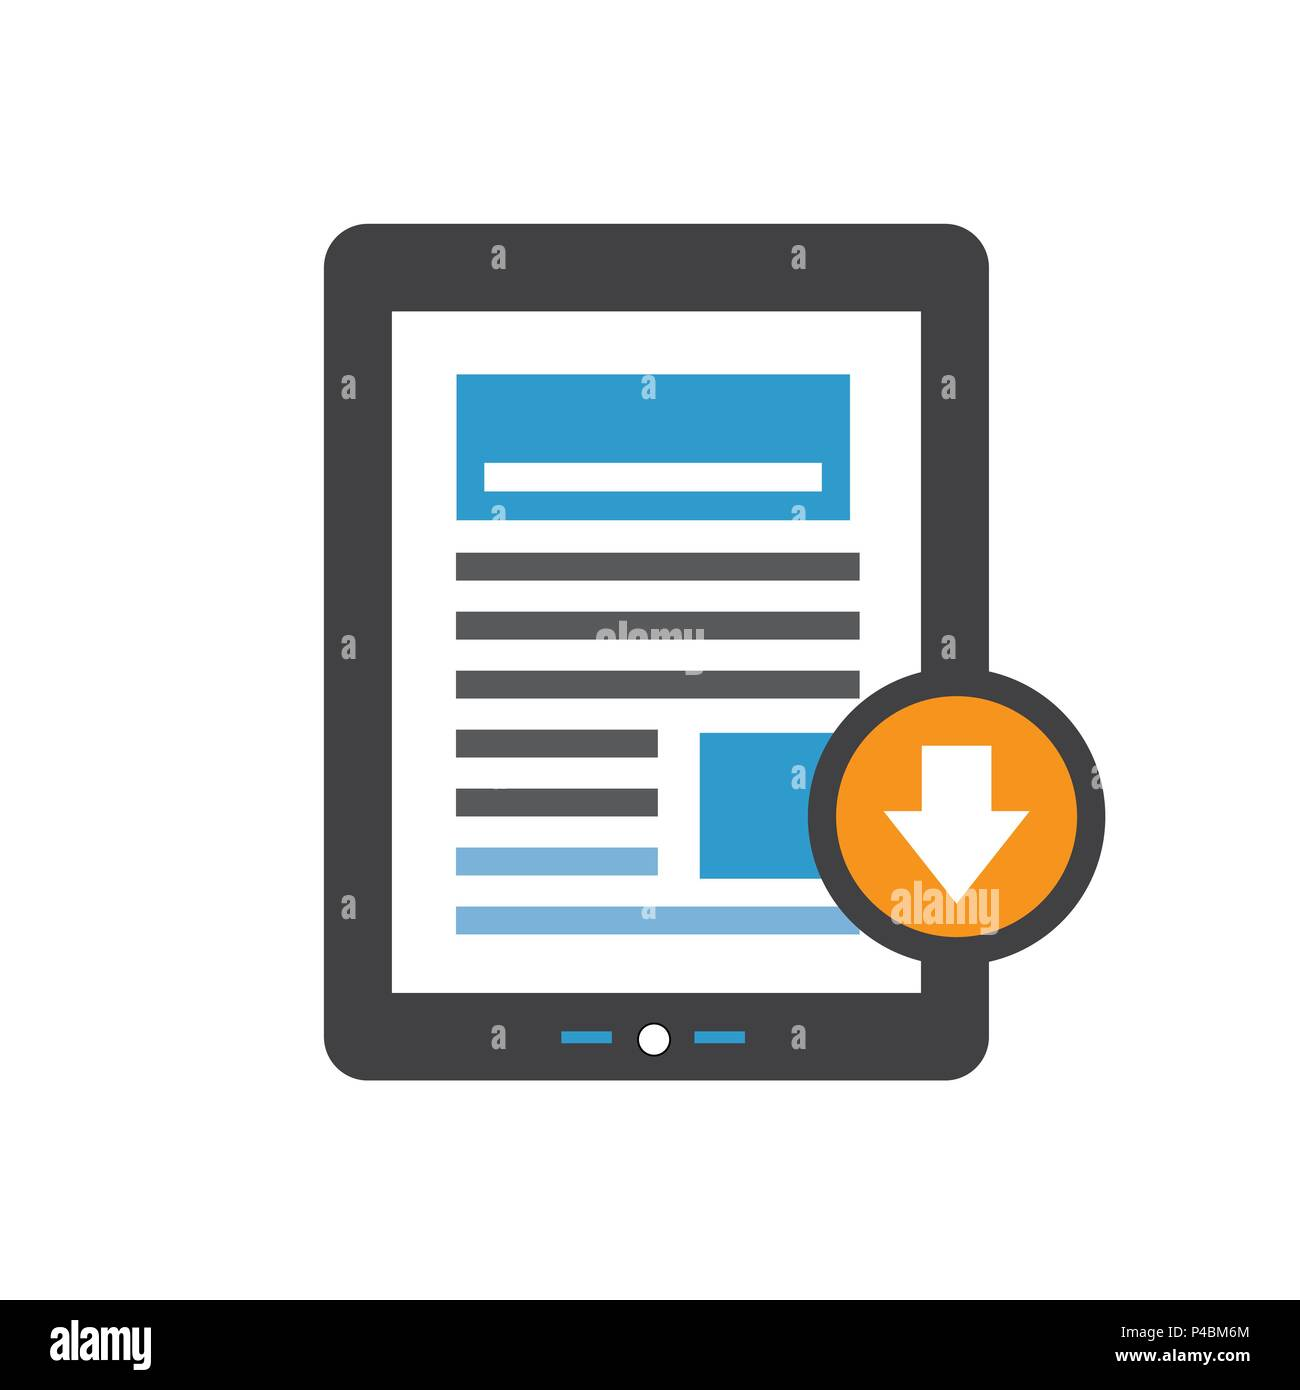 Whitepaper or Ebook CTA w Cover and Download Button for Free Digital Download - Call for Marketing Action - Stock Image